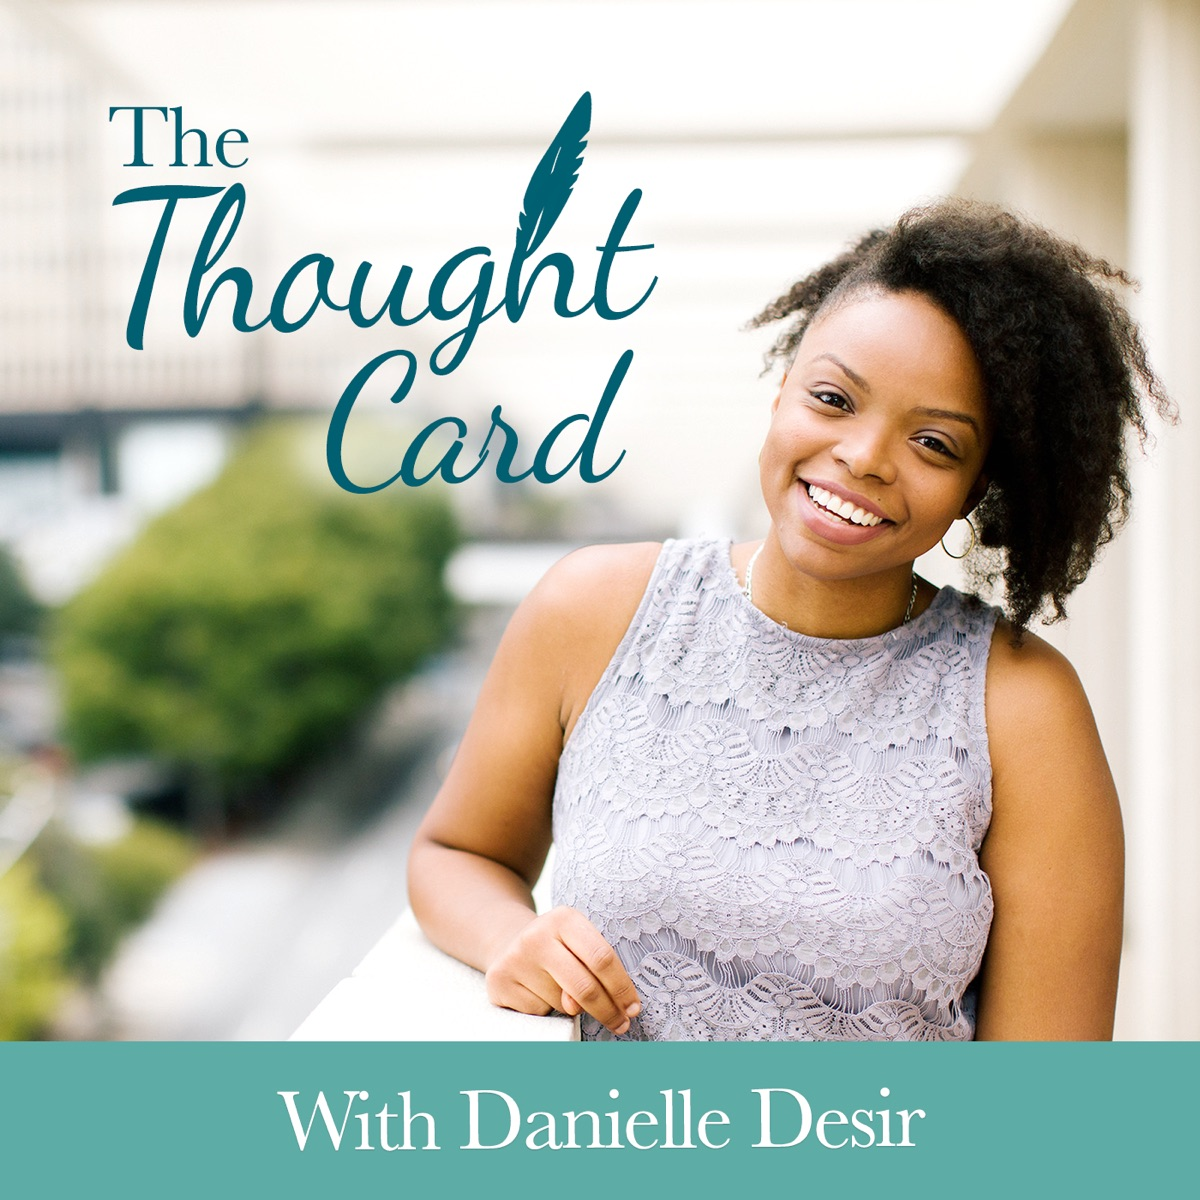 The Thought Card